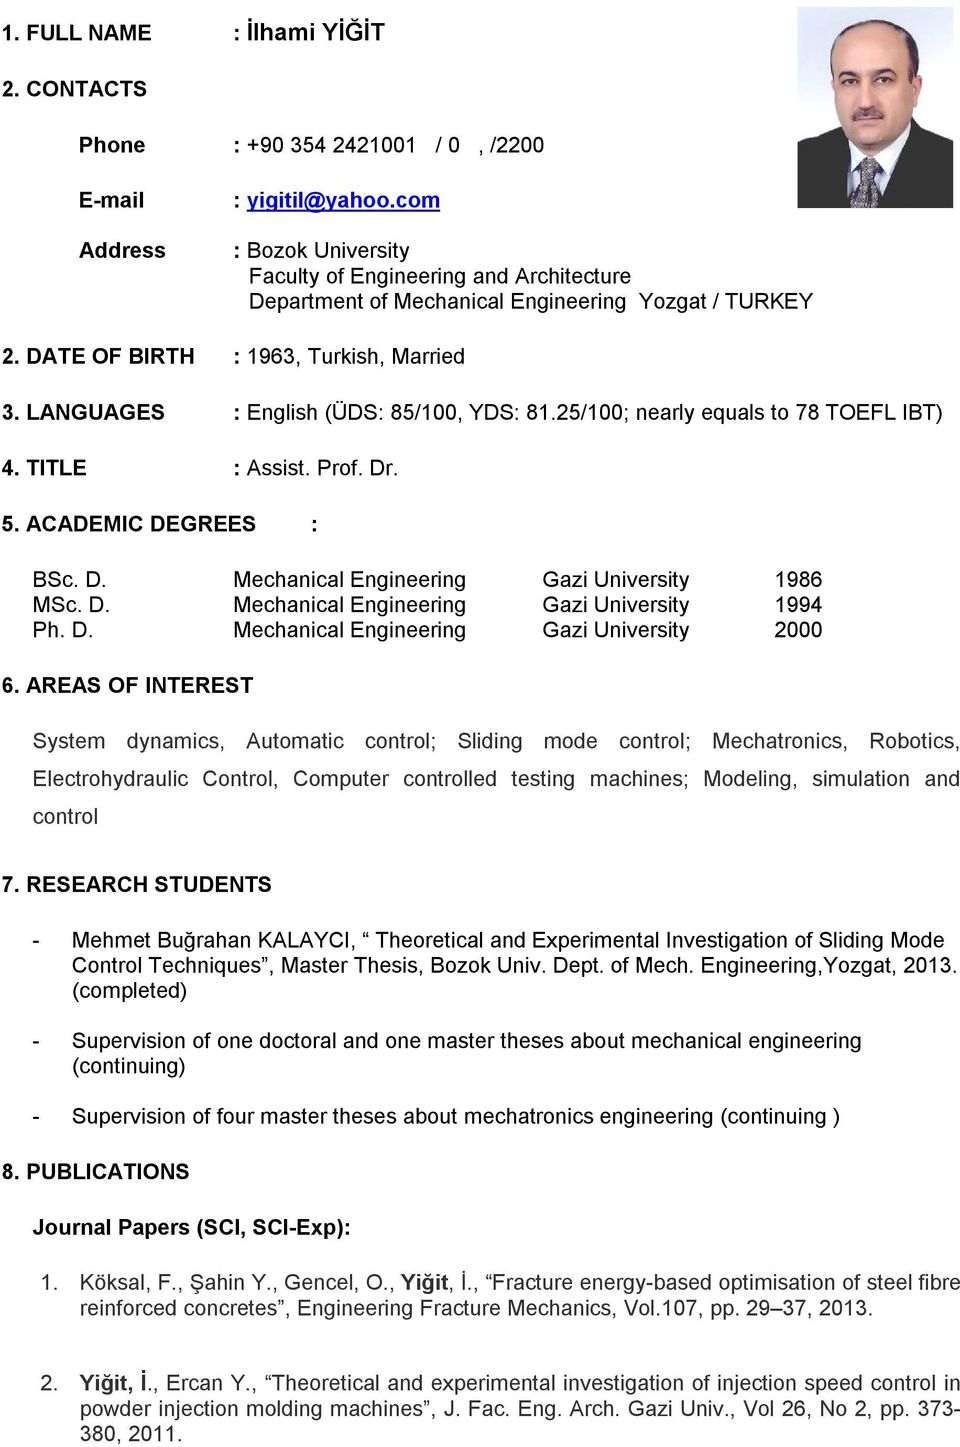 LANGUAGES : English (ÜDS: 85/100, YDS: 81.25/100; nearly equals to 78 TOEFL IBT) 4. TITLE : Assist. Prof. Dr. 5. ACADEMIC DEGREES : BSc. D. Mechanical Engineering Gazi University 1986 MSc. D. Mechanical Engineering Gazi University 1994 Ph.